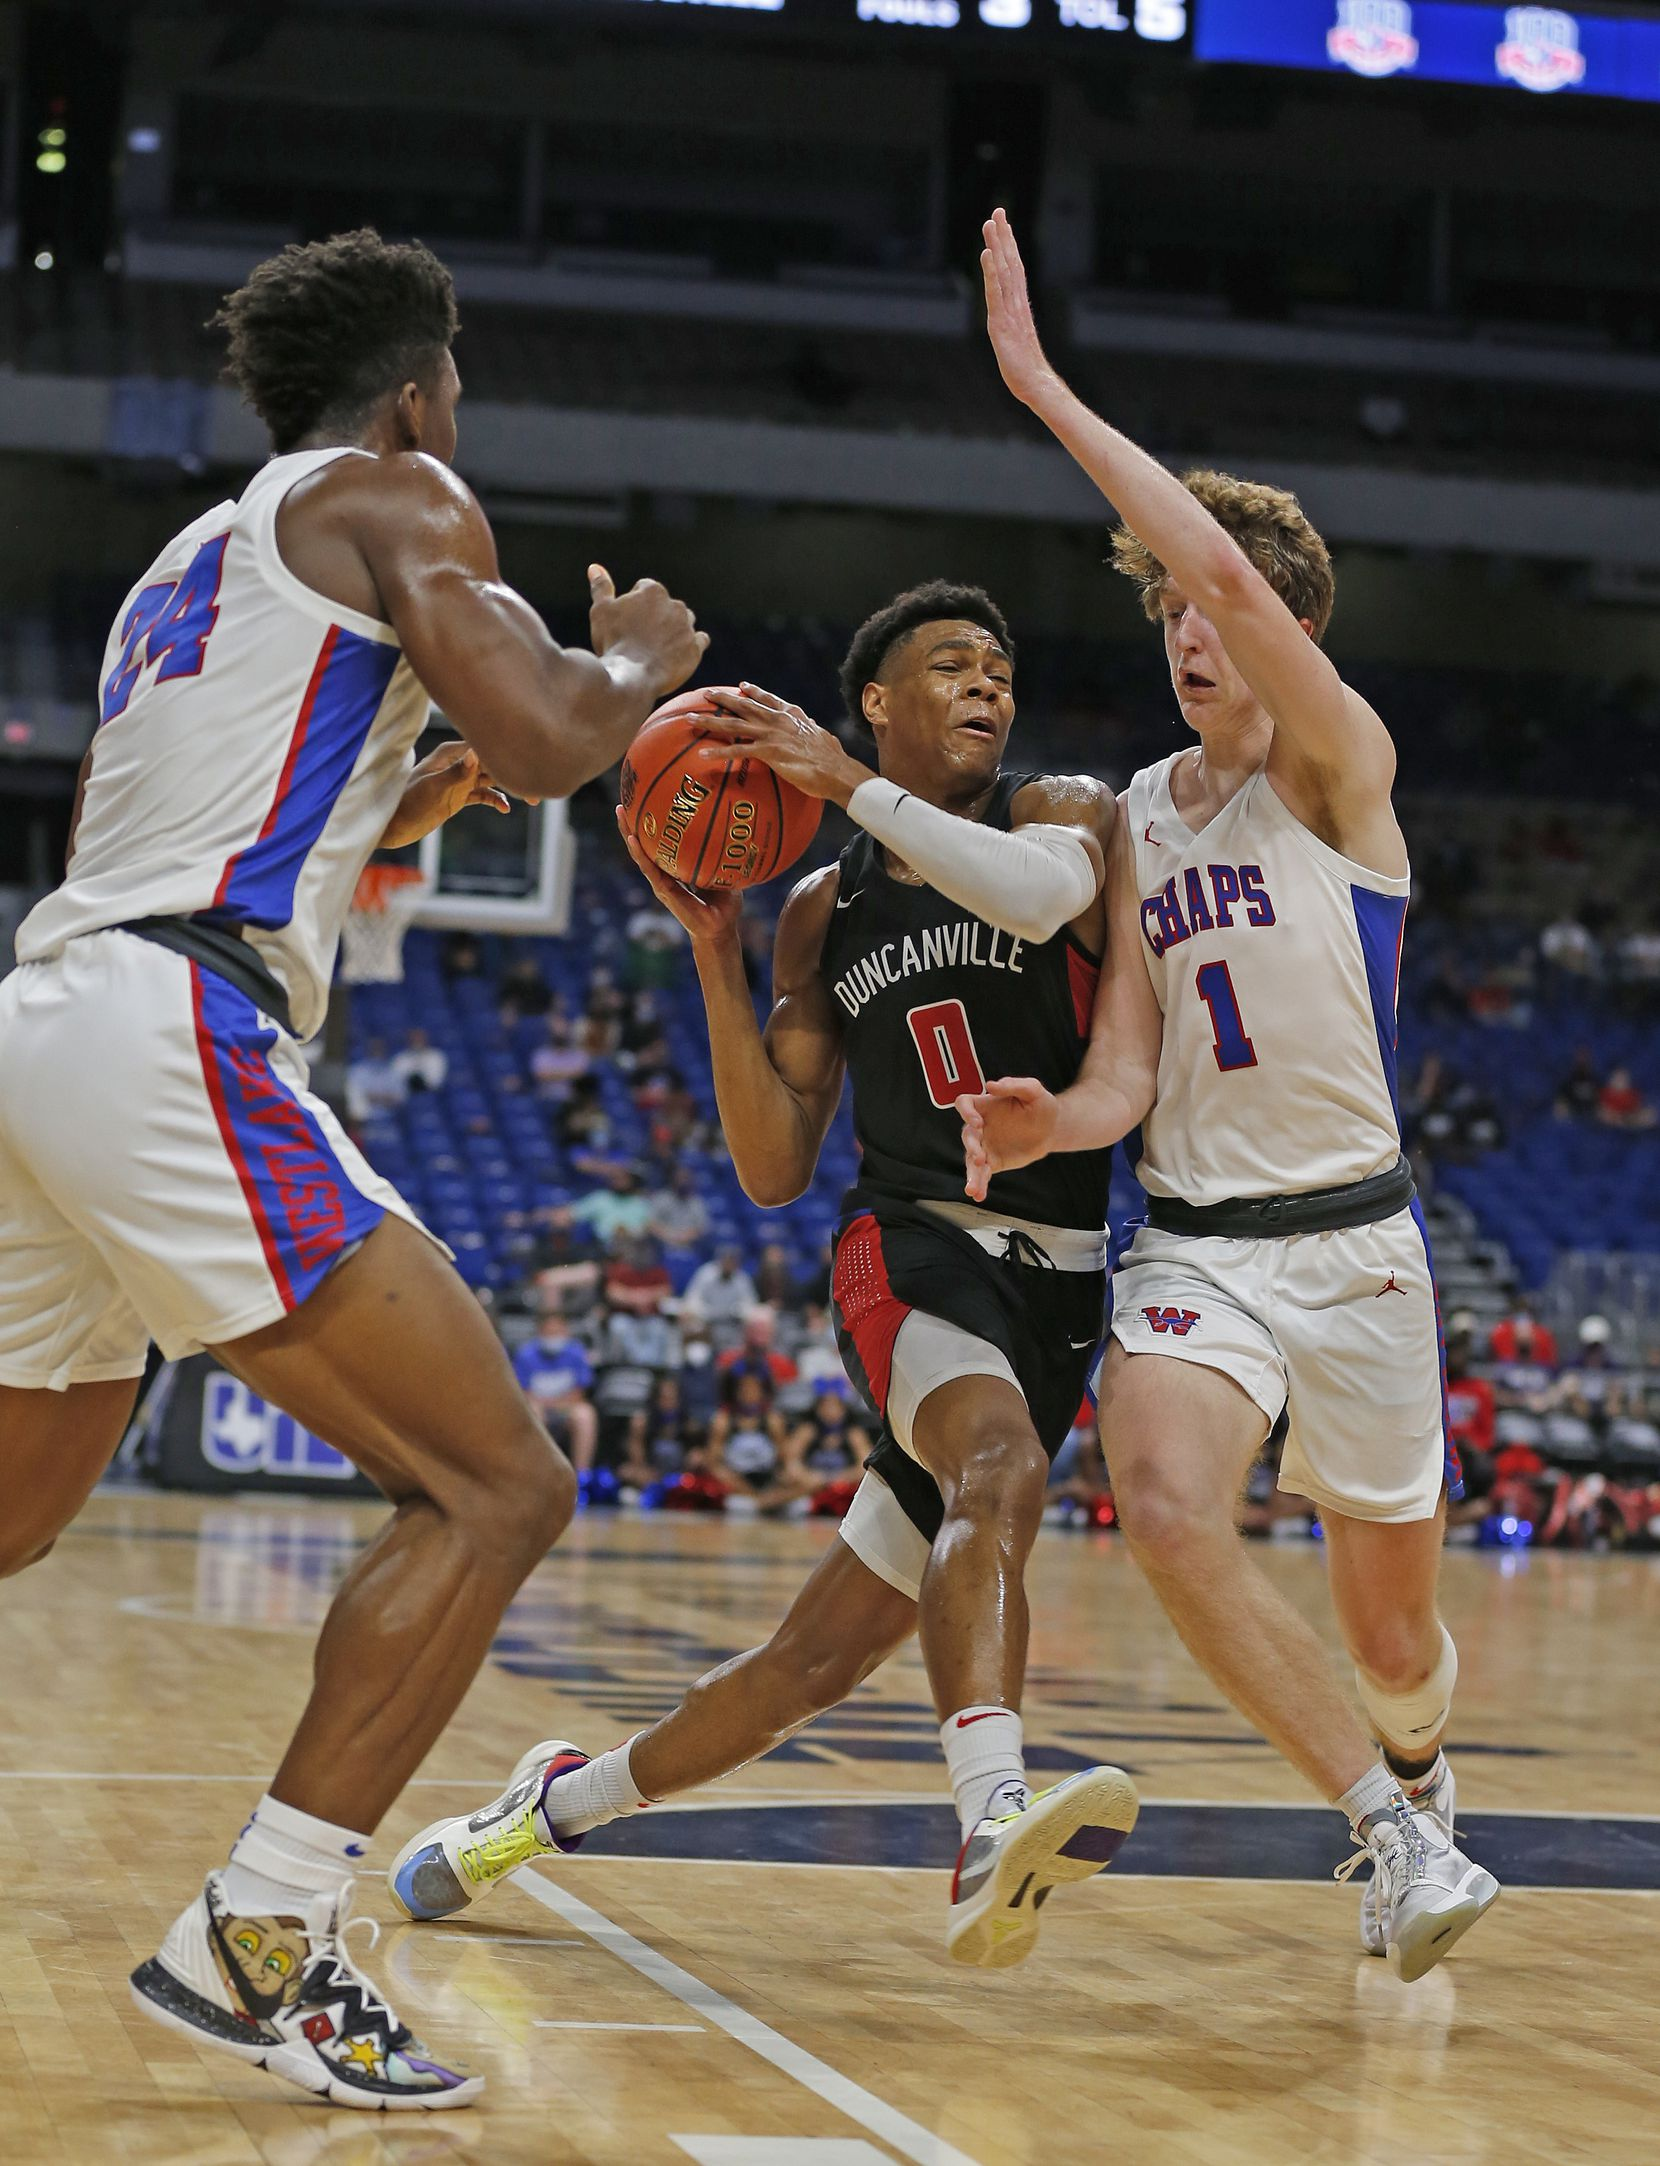 Duncanville Zhuric Phelps #0 drives on Westlake Cade Mankle #1. UIL boys Class 6A basketball state championship game between Duncanville and Austin Westlake on Saturday, March 13, 2021 at the Alamodome.